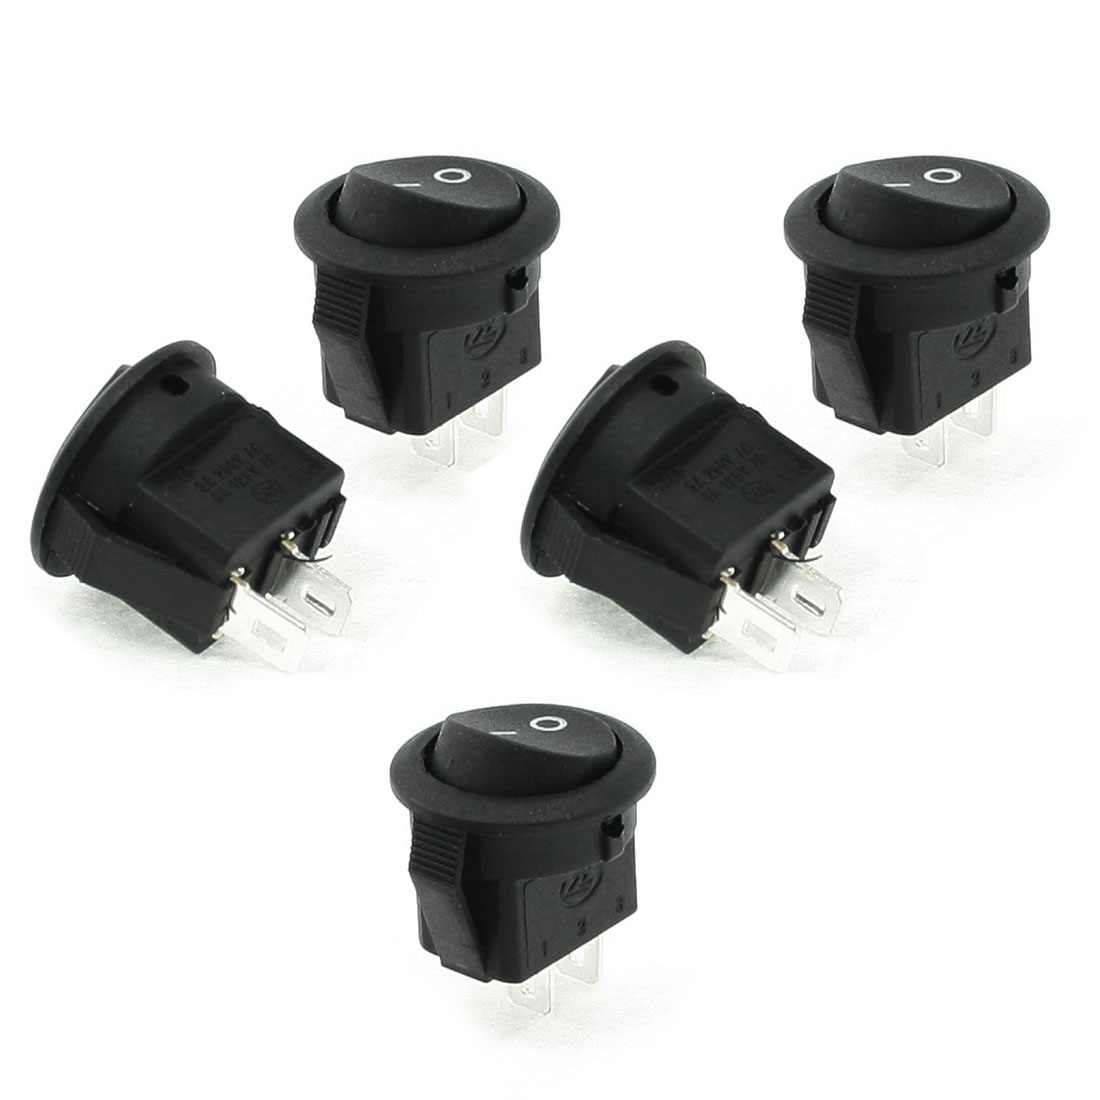 5 Pcs AC 125V/6A 250V/3A SPST ON OFF Rocker Boat Switches Black